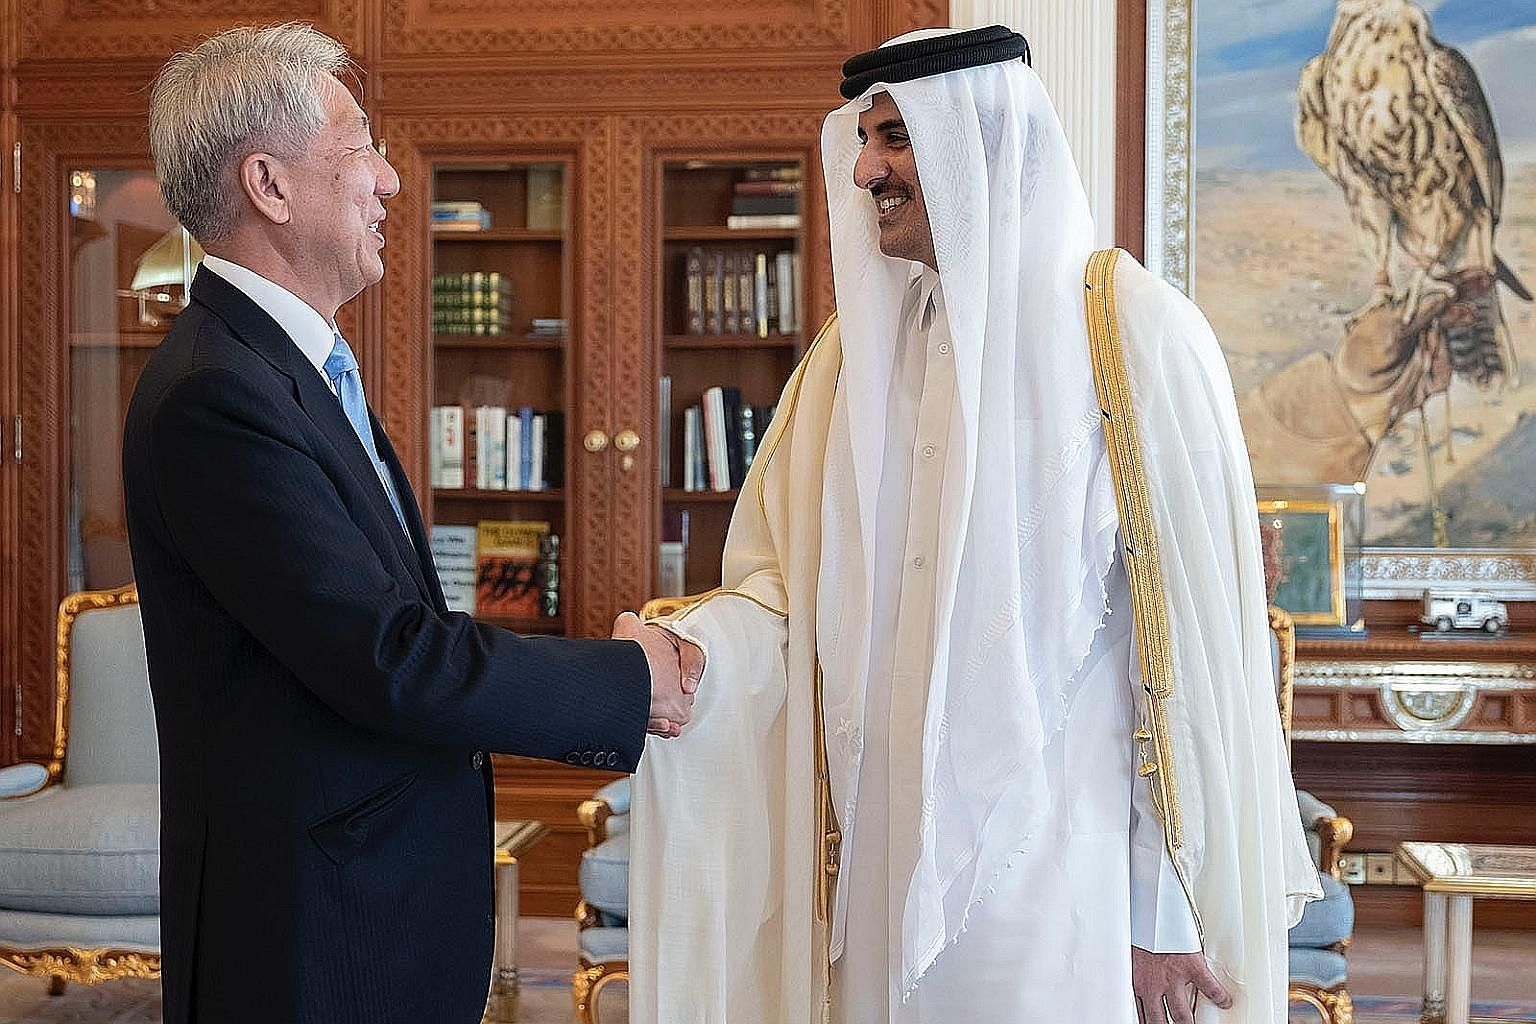 Senior Minister Teo Chee Hean calling on the Emir of Qatar, Sheikh Tamim bin Hamad Al Thani, on Monday. Mr Teo's visit to Qatar ended yesterday. PHOTO: STATE OF QATAR